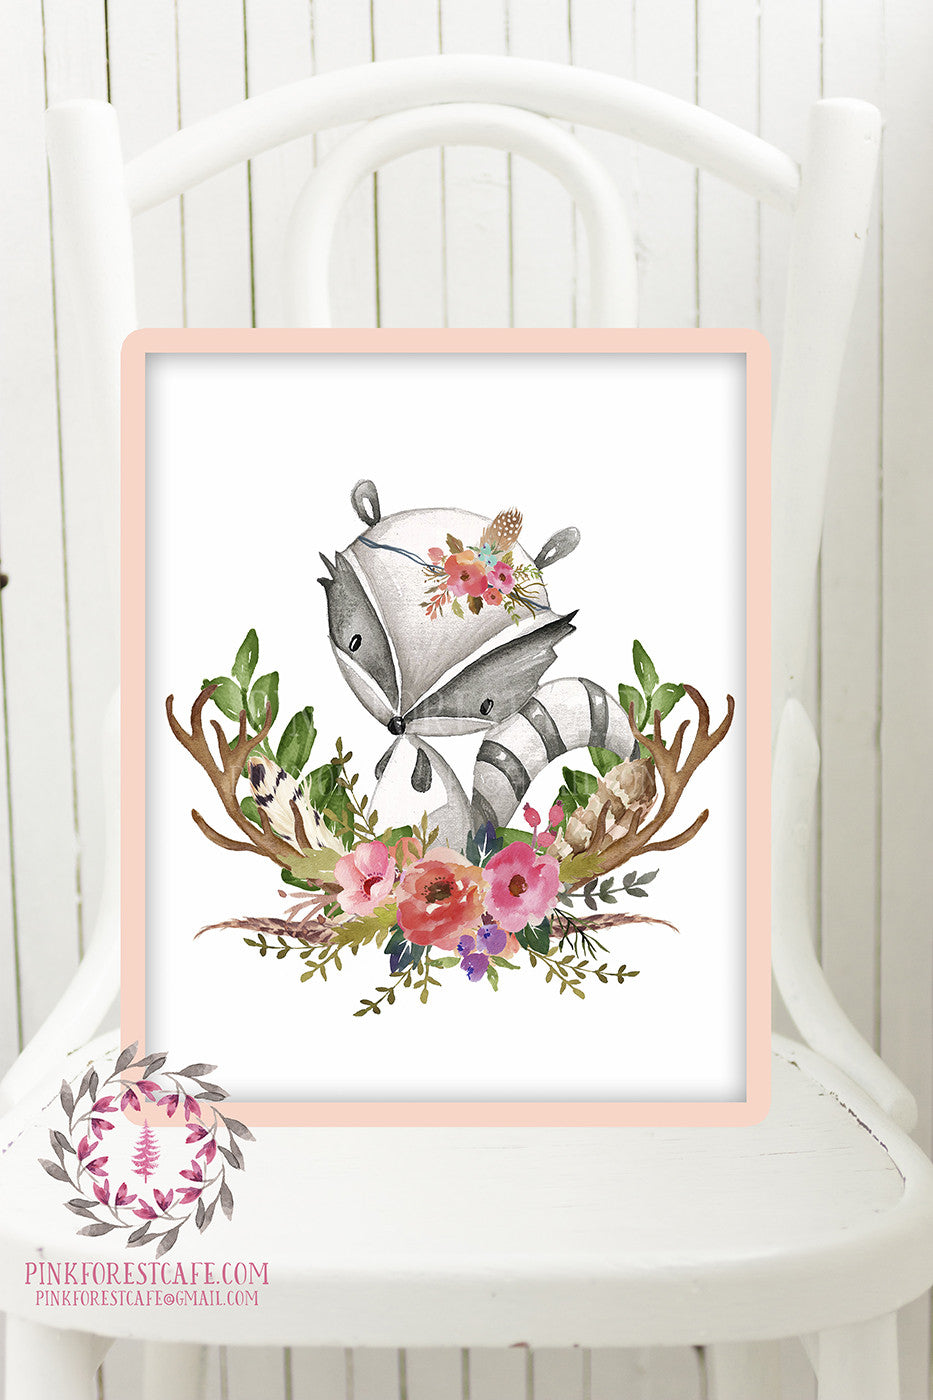 Raccoon Woodland Boho Printable Print Wall Art Baby Nursery Feather Antlers Watercolor Bohemian Floral Girl Room Decor